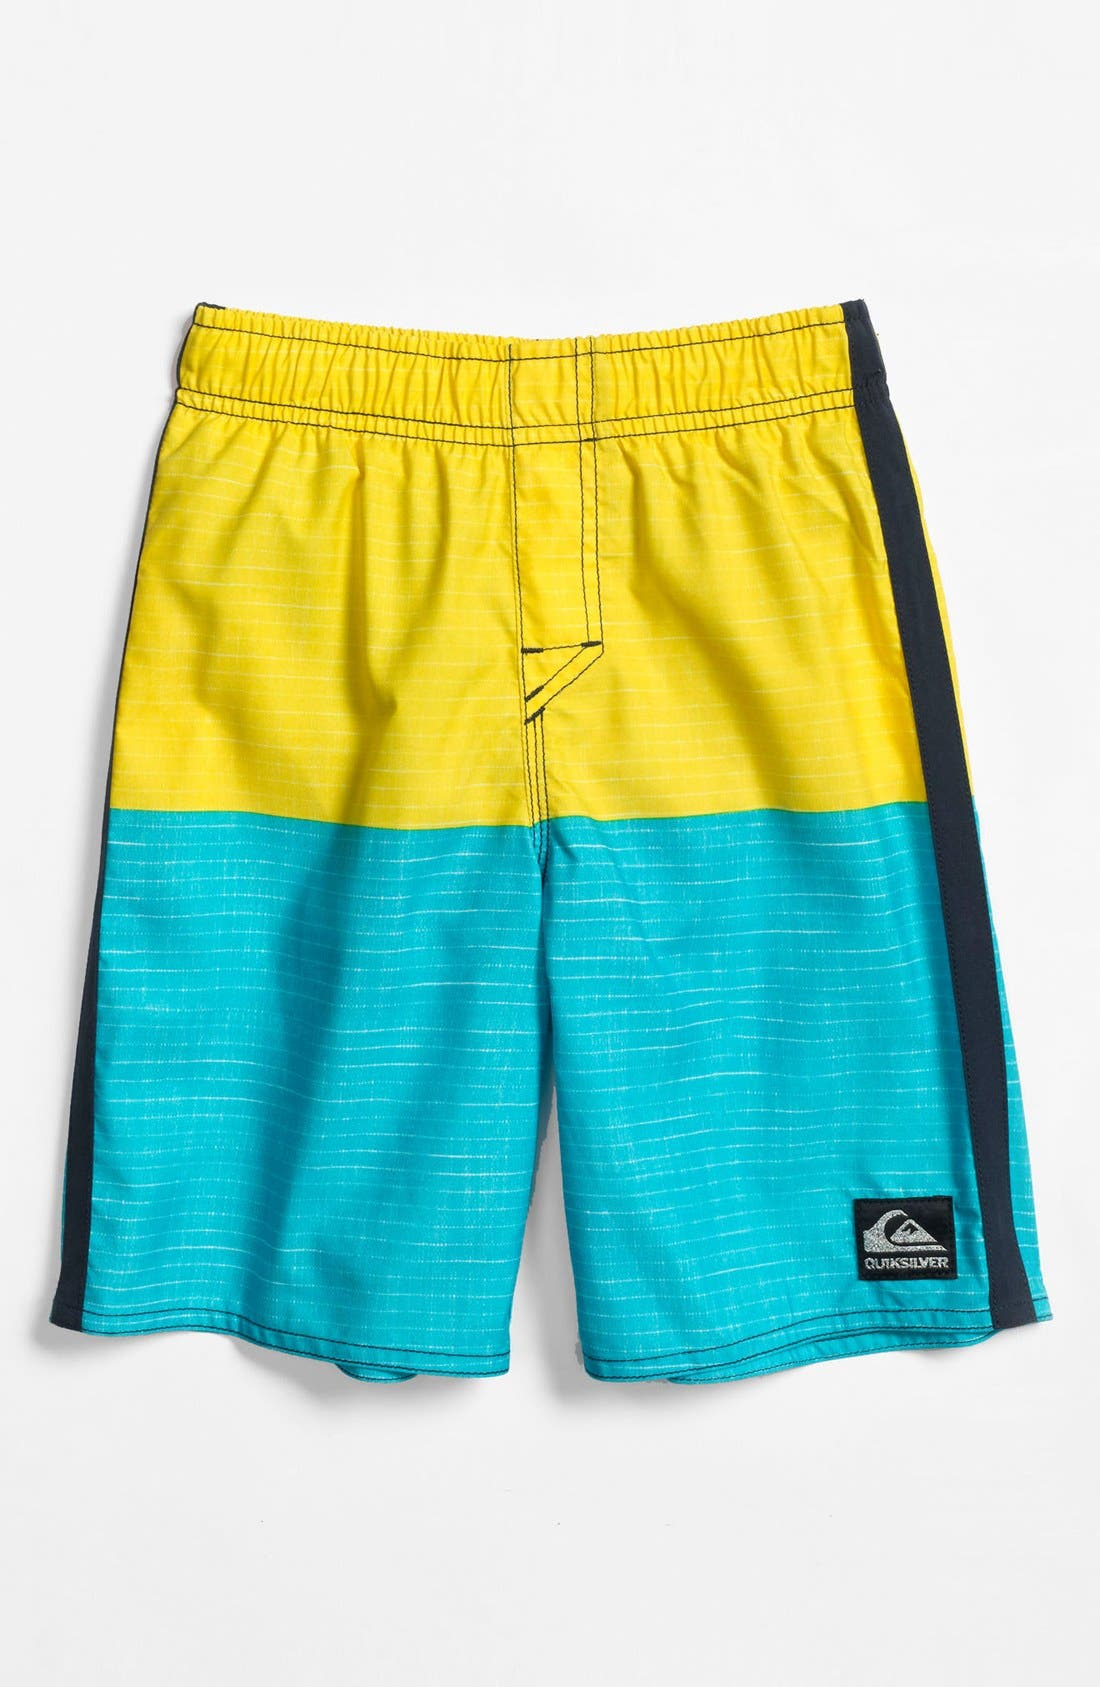 Main Image - Quiksilver 'Magic Fish Water Change' Volley Shorts (Little Boys)